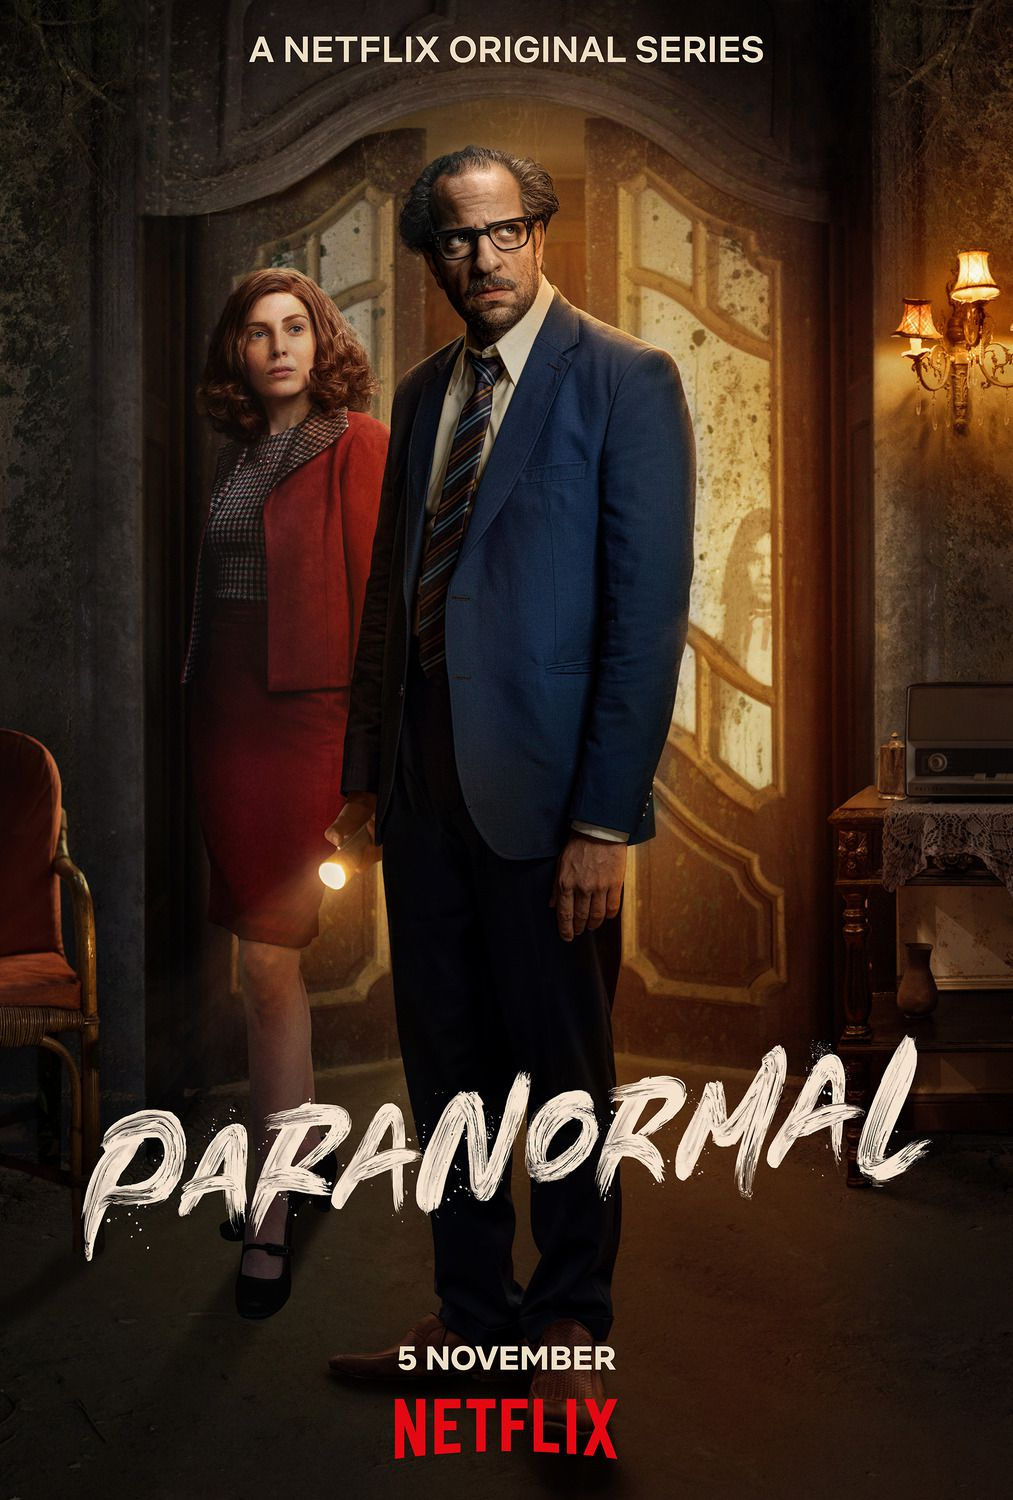 Paranormal - Série (2020) streaming VF gratuit complet